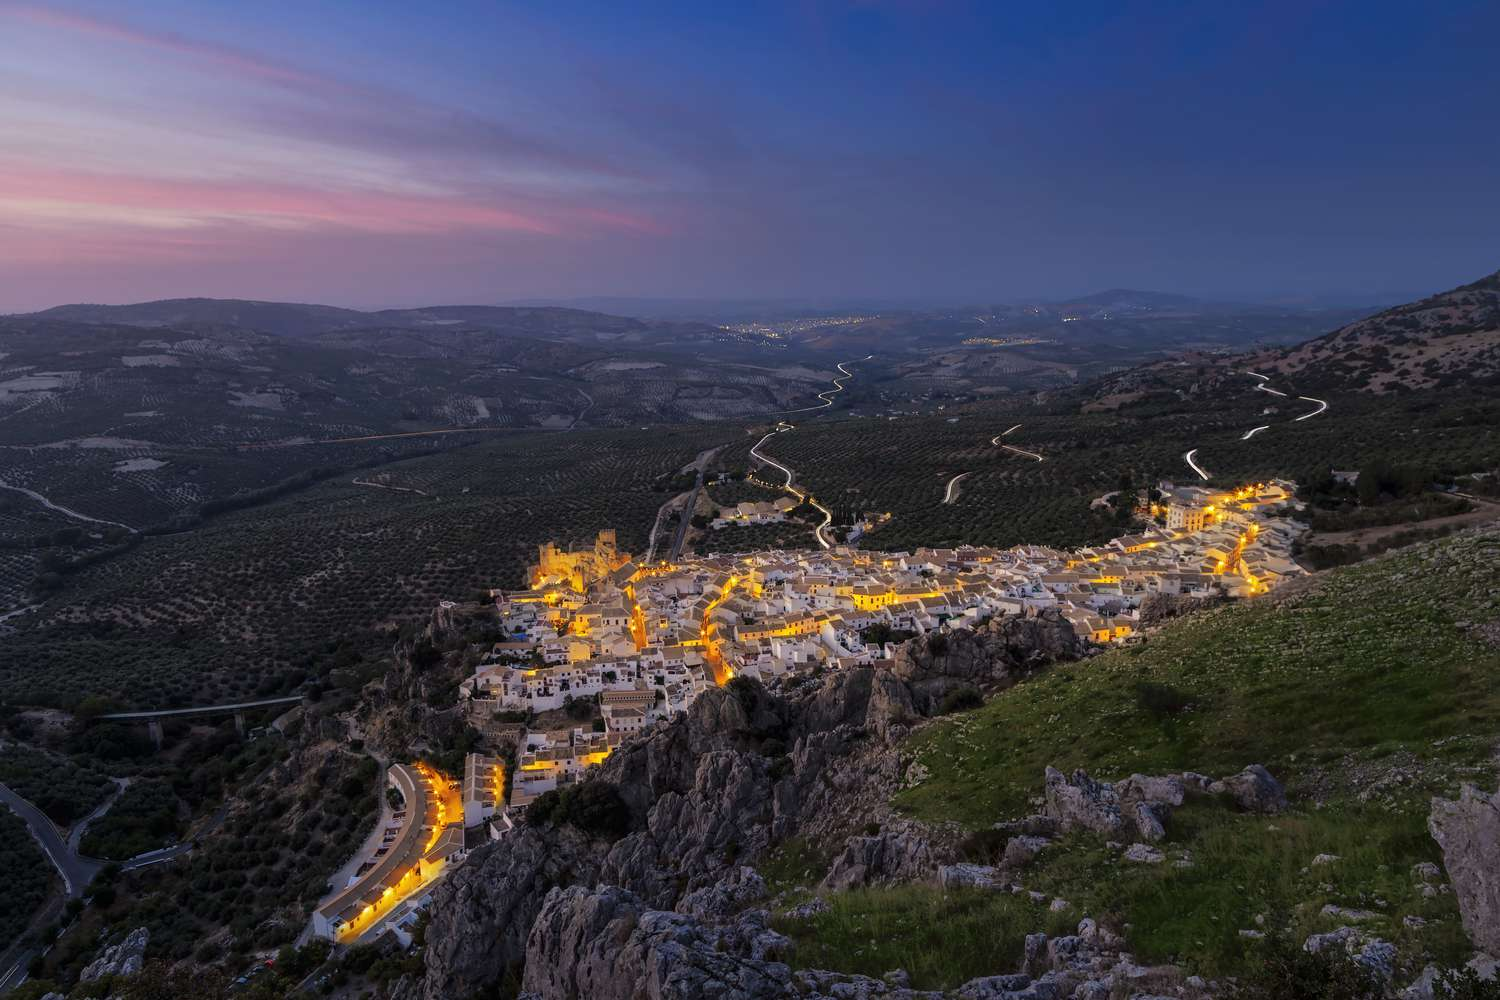 The town of Zuheros, Spain illuminated at nights